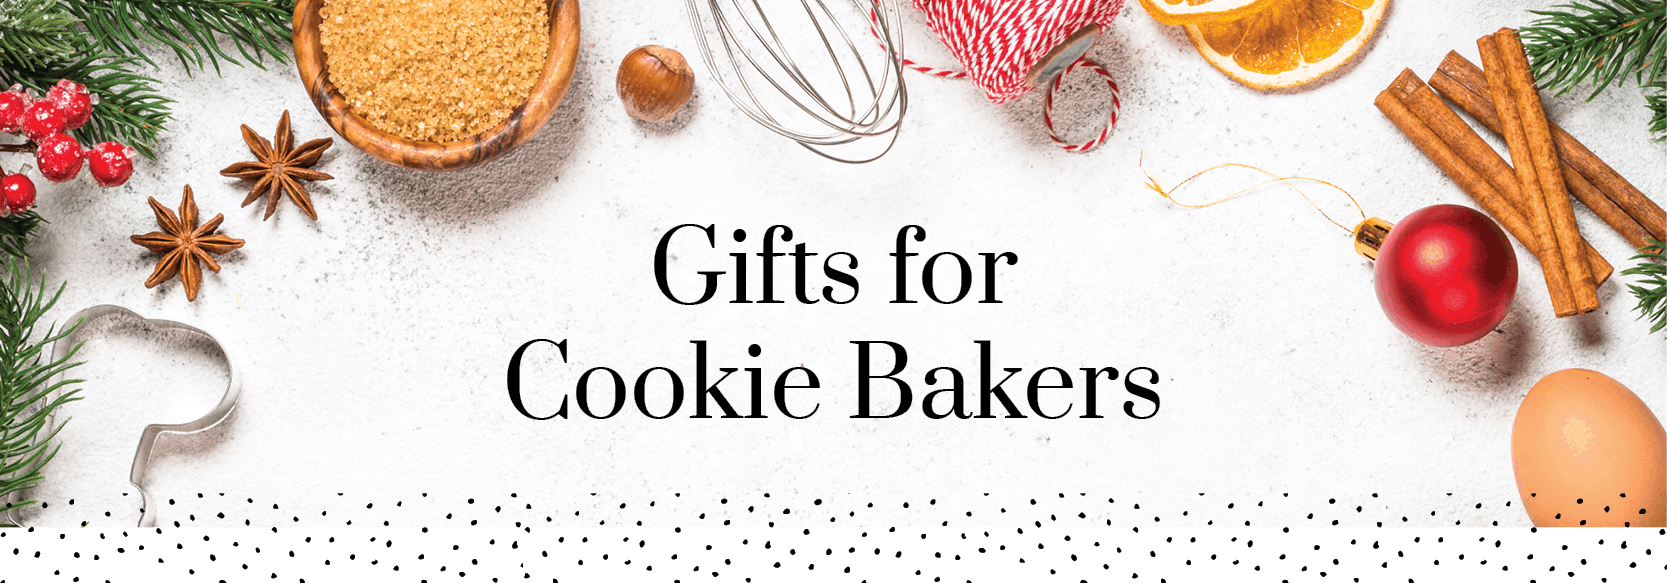 Gifts for Cookie Bakers